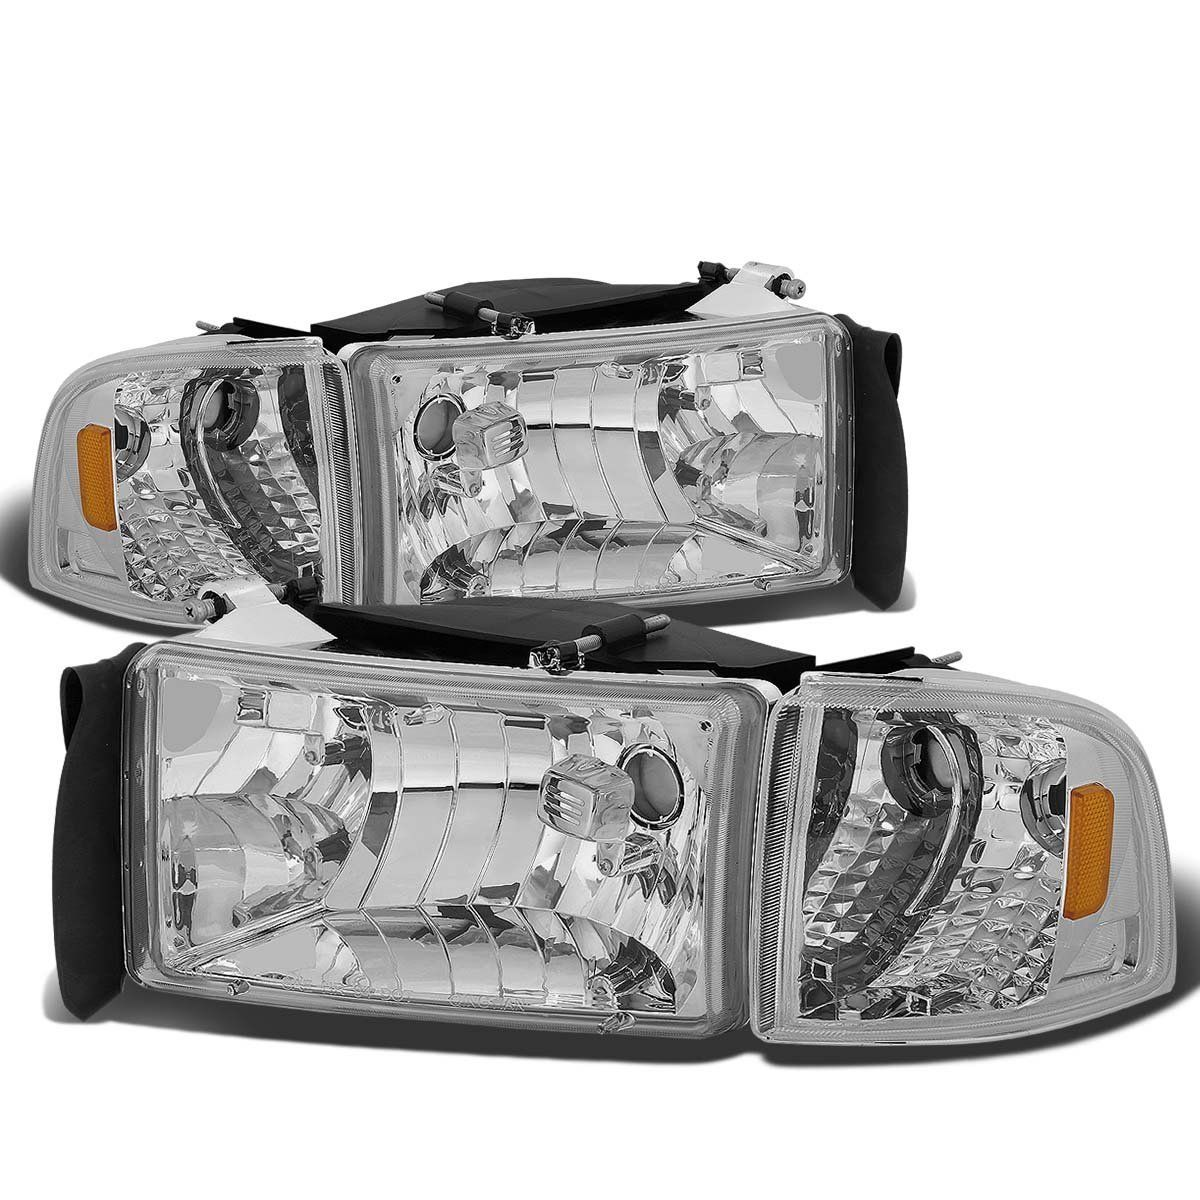 94 01 Dodge Ram 1500 2500 3500 Oem Style Crystal Headlights Chrome Dodge Ram Headlights Dodge